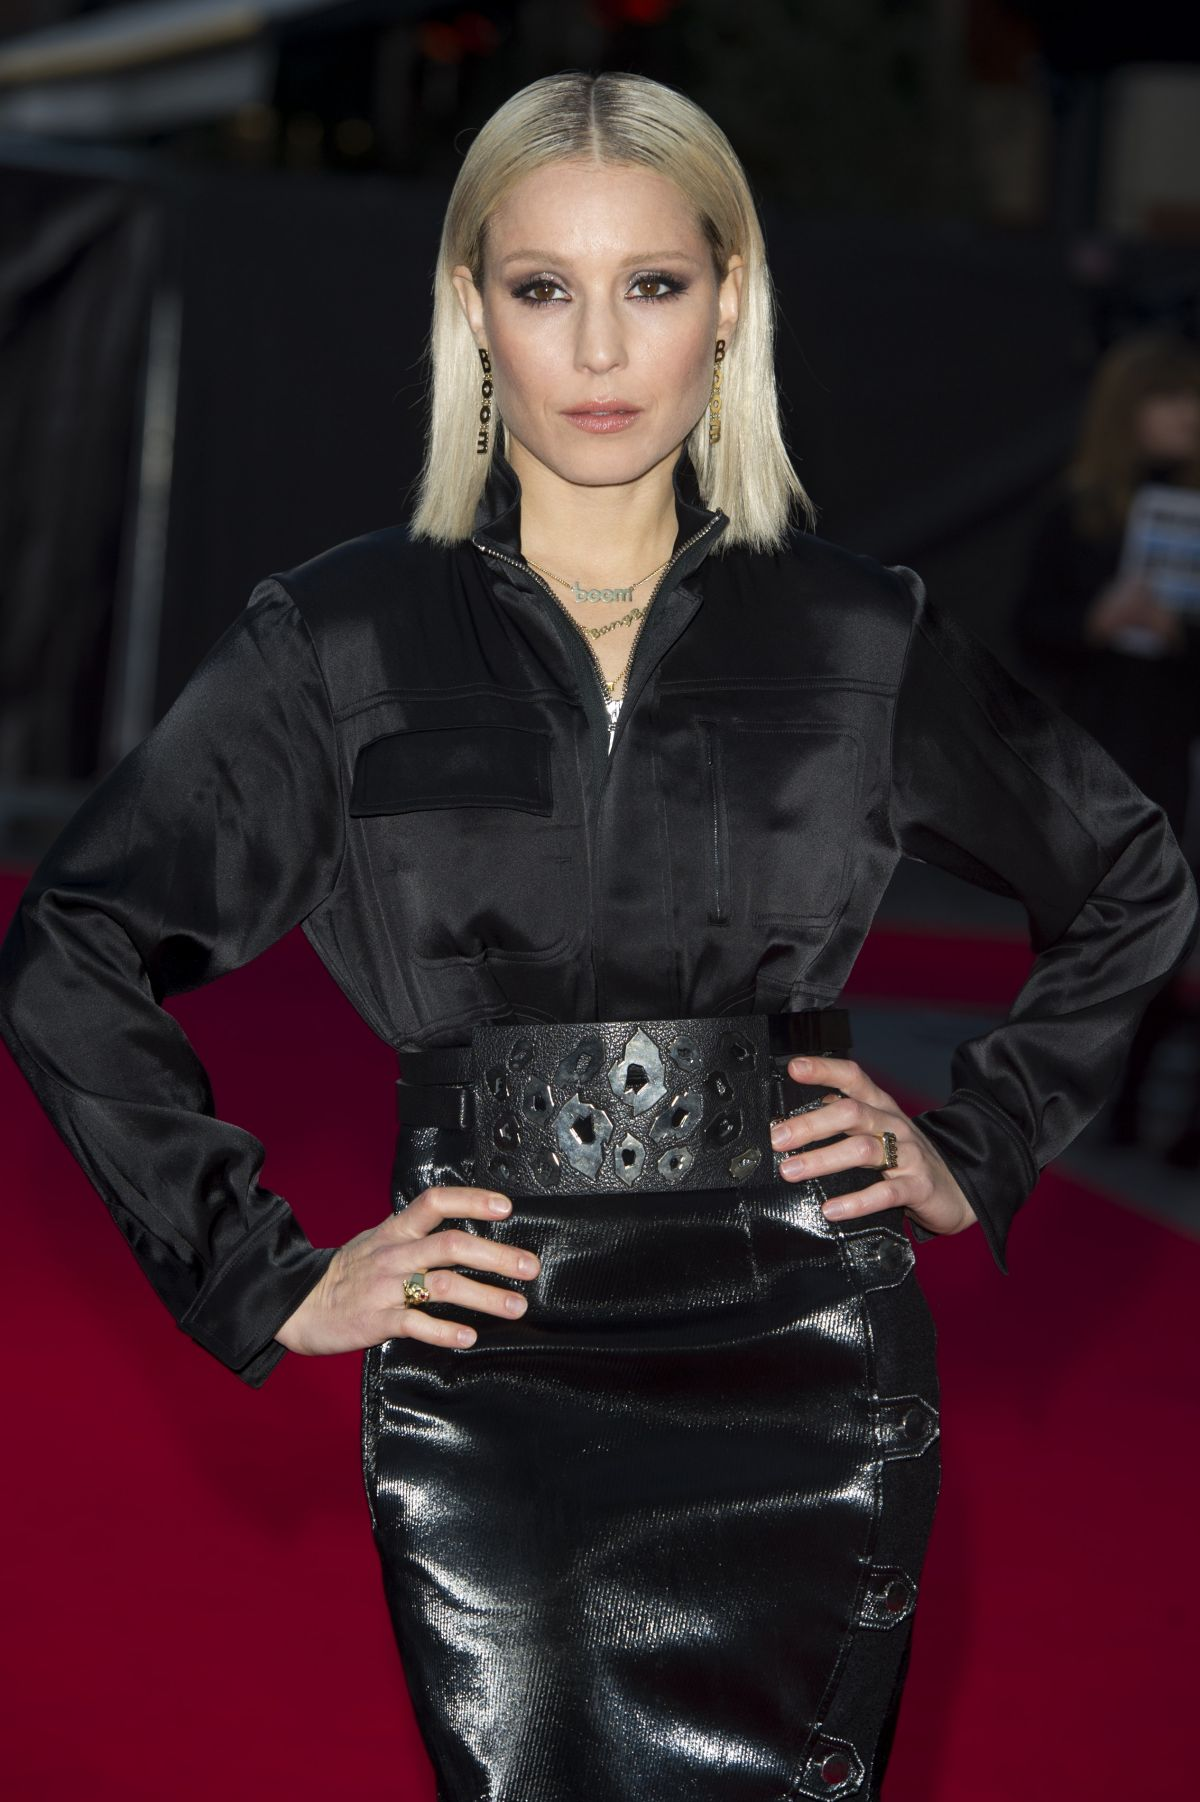 noomi-rapace-arriving-to-screening-of-the-drop-during-the-58th-bfi-london-ff_3